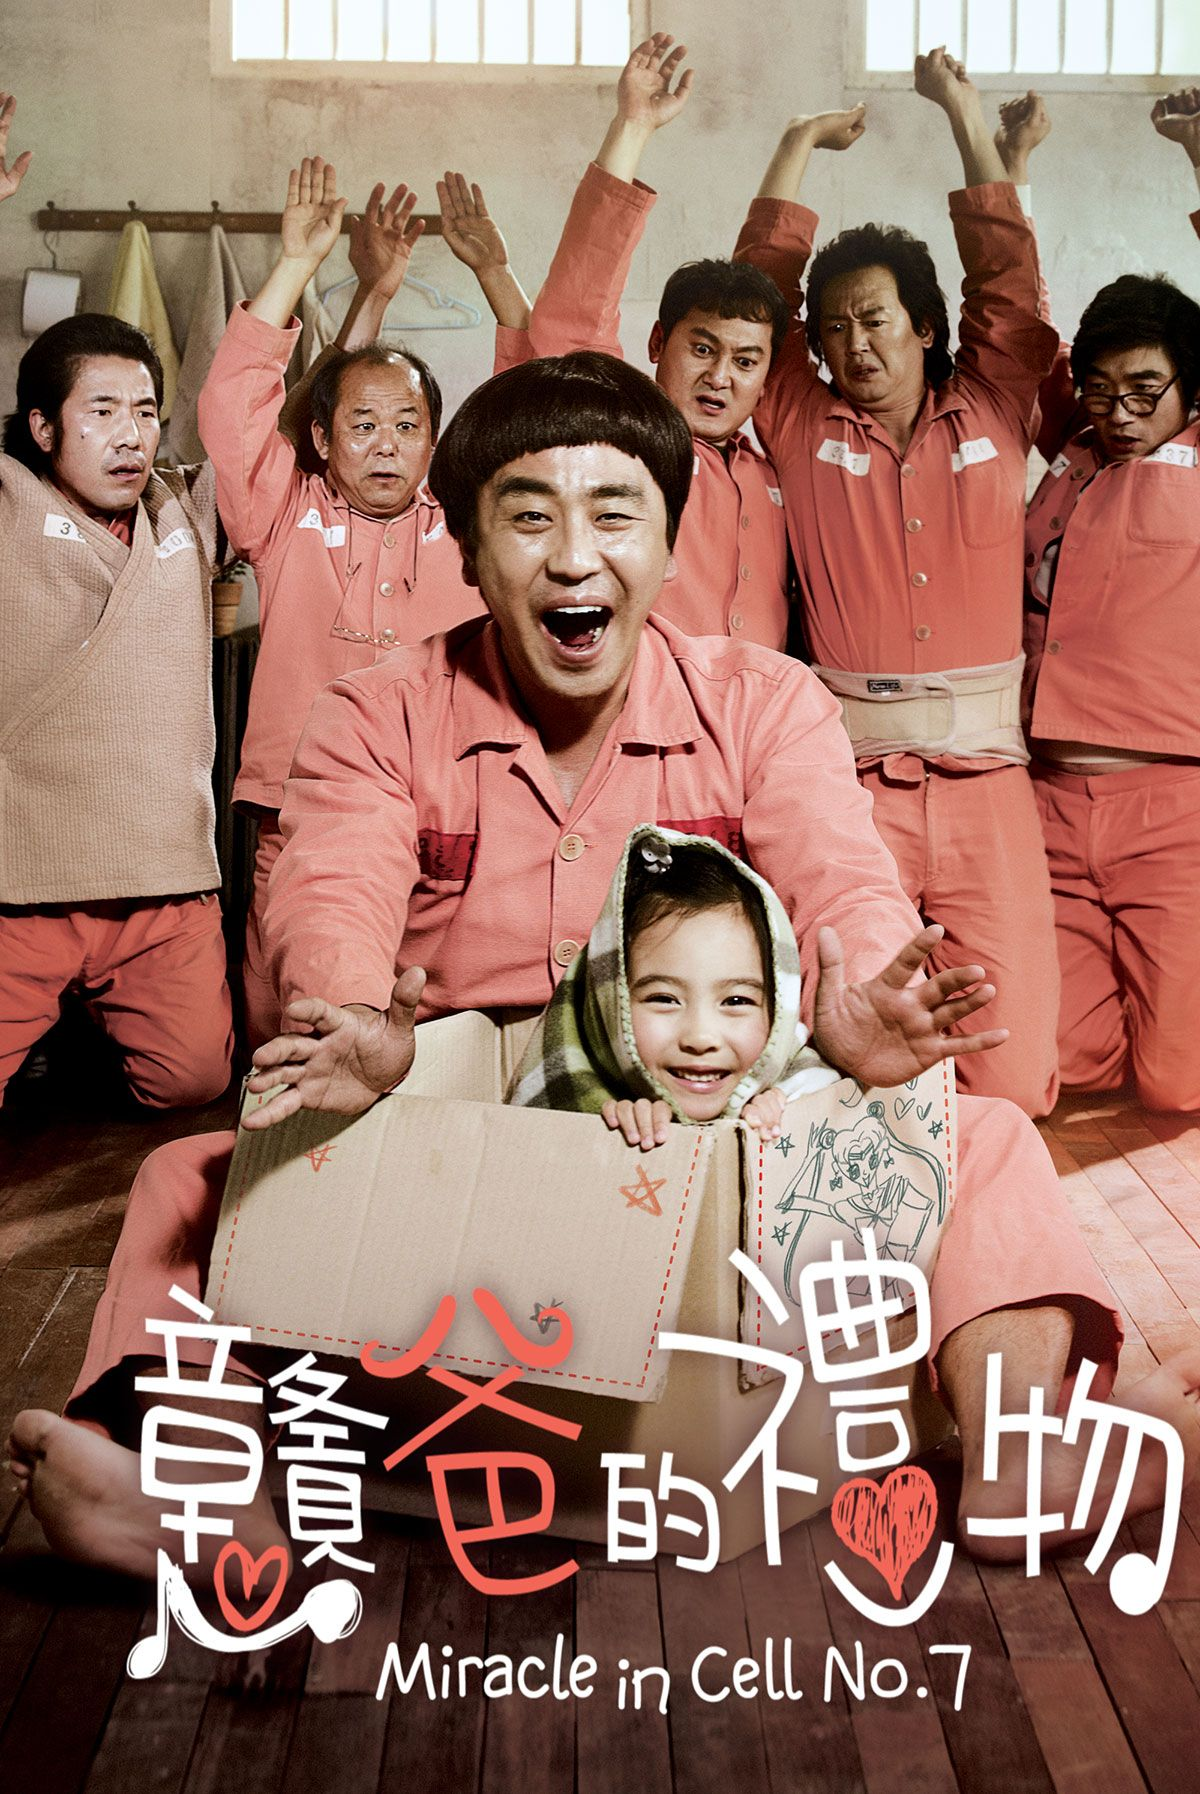 Miracle In Cell No 7 South Korean Movie Poster 2013 Plot Inmates At A Korean Prison Join Forces To Protect A Comrade And His Young Daug Film Aktor Lucu